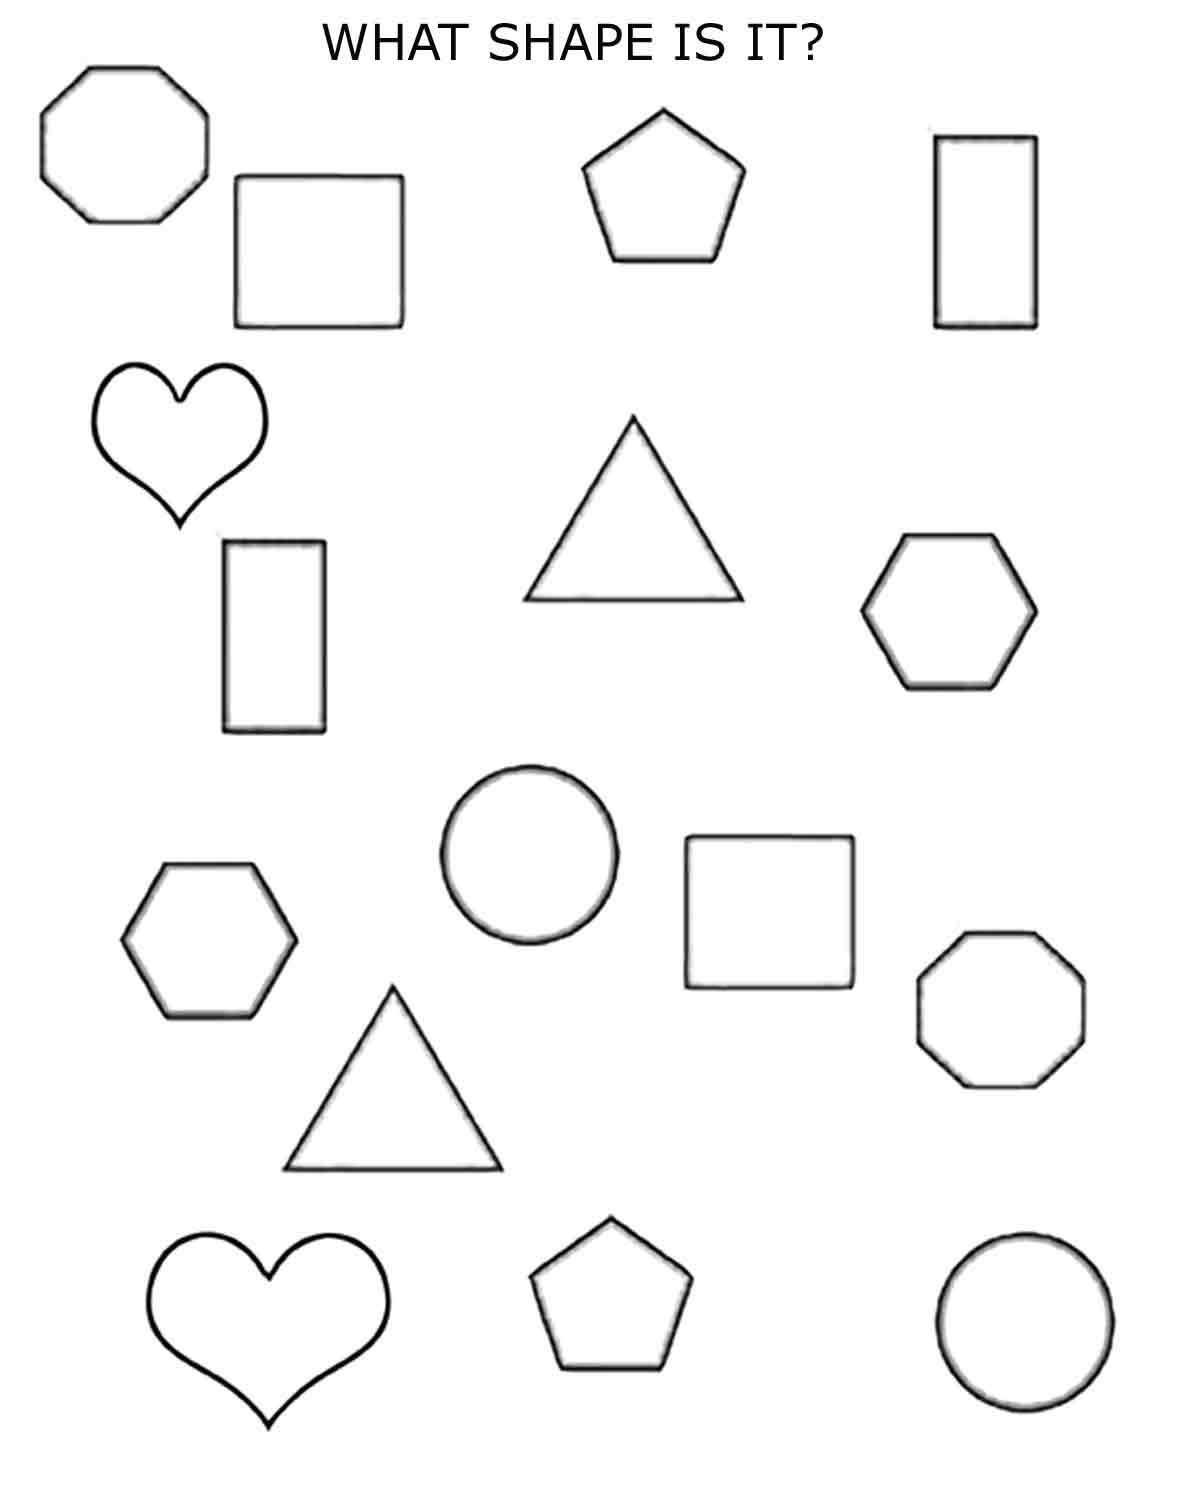 Polygon Worksheets 2nd Grade 2d Shapes 1st 2nd Grade Planet12sun Printables